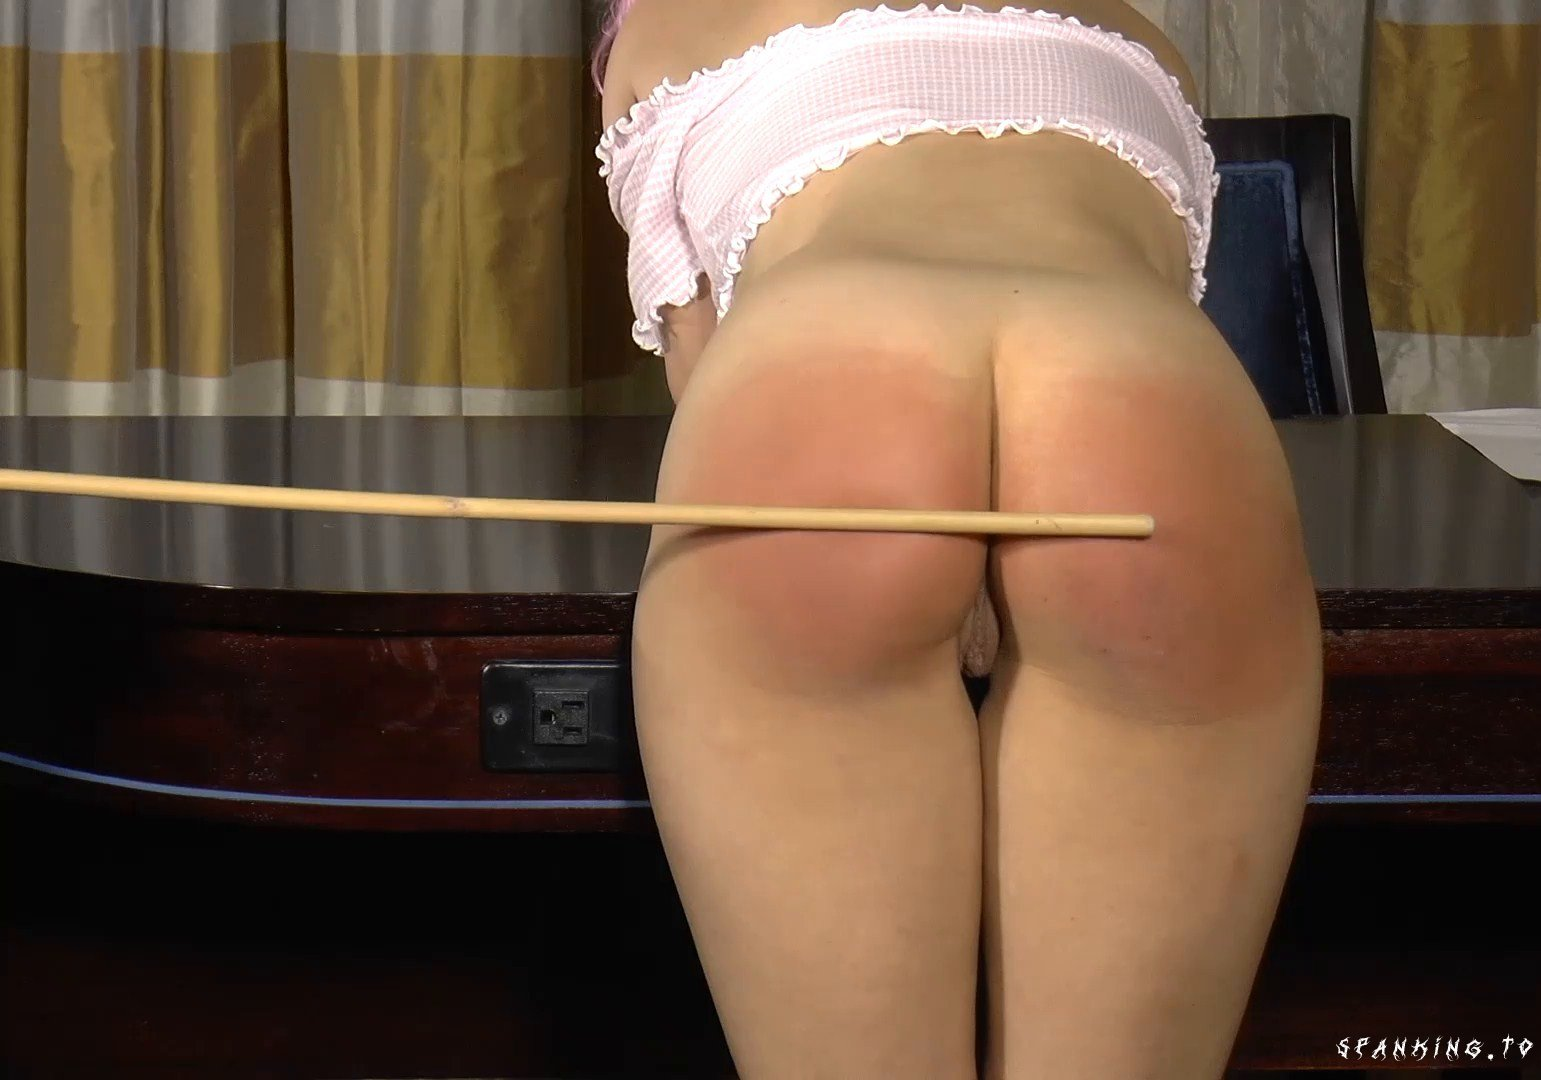 Kiki Spanked And Caned At School (Part 2) - Sarahgregoryspanking - Full HD